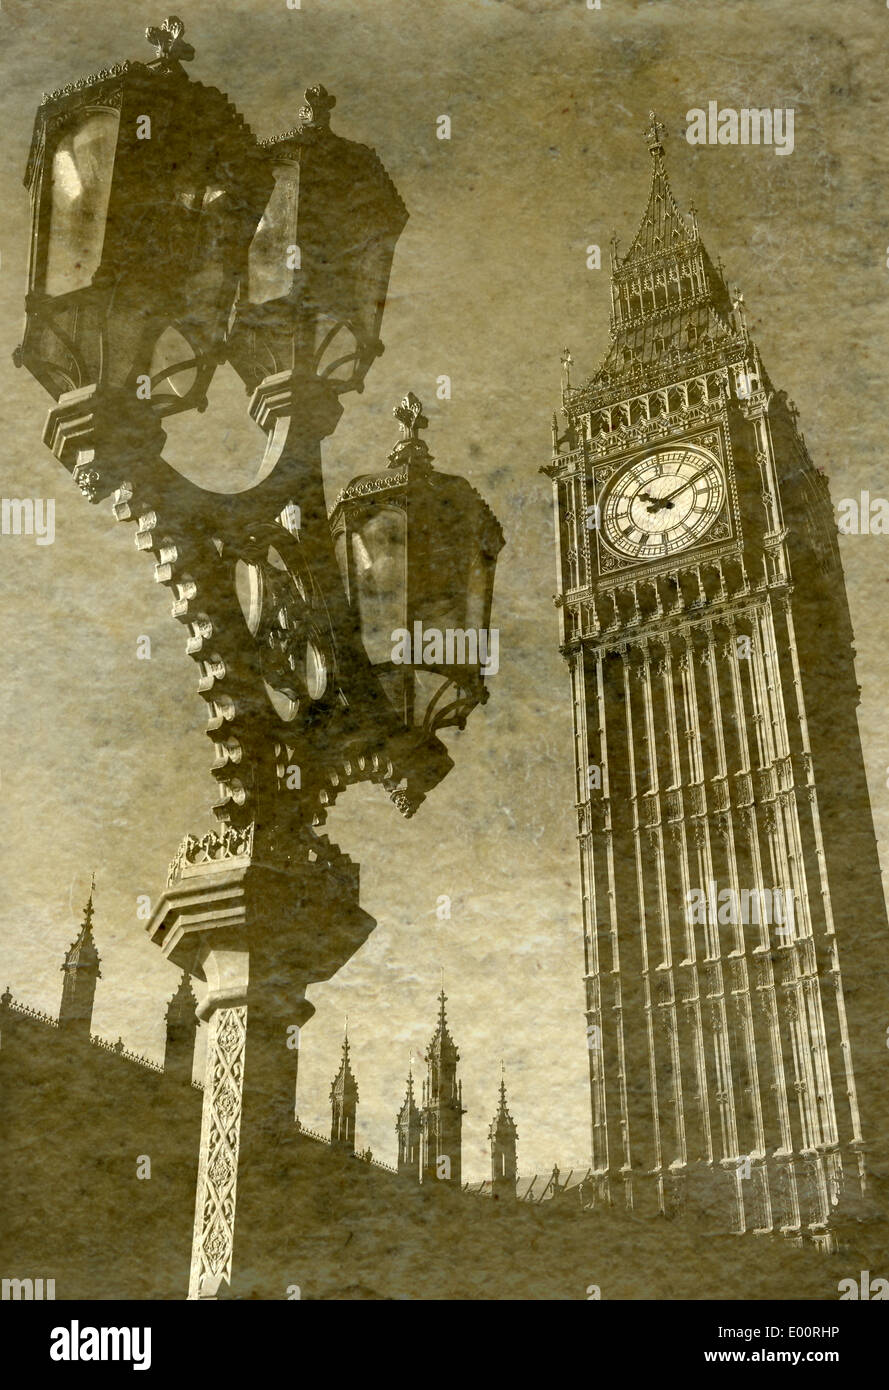 Vintage Antigue Picture of Big Ben/the Houses of Parliament in London. Stock Photo